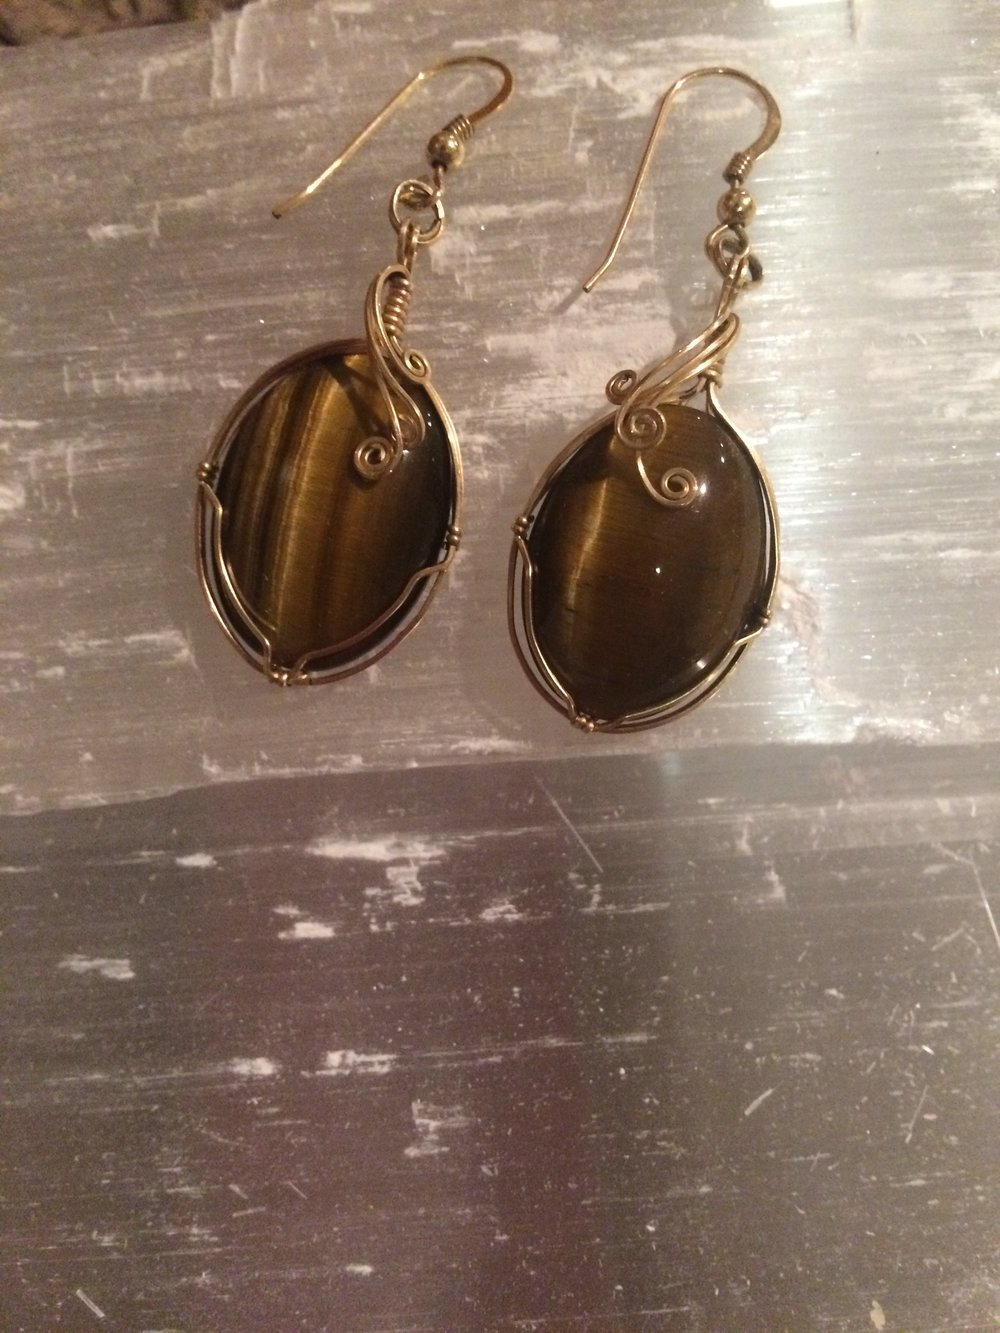 Tiger Eye Earrings SQ107 2x1 $45.00